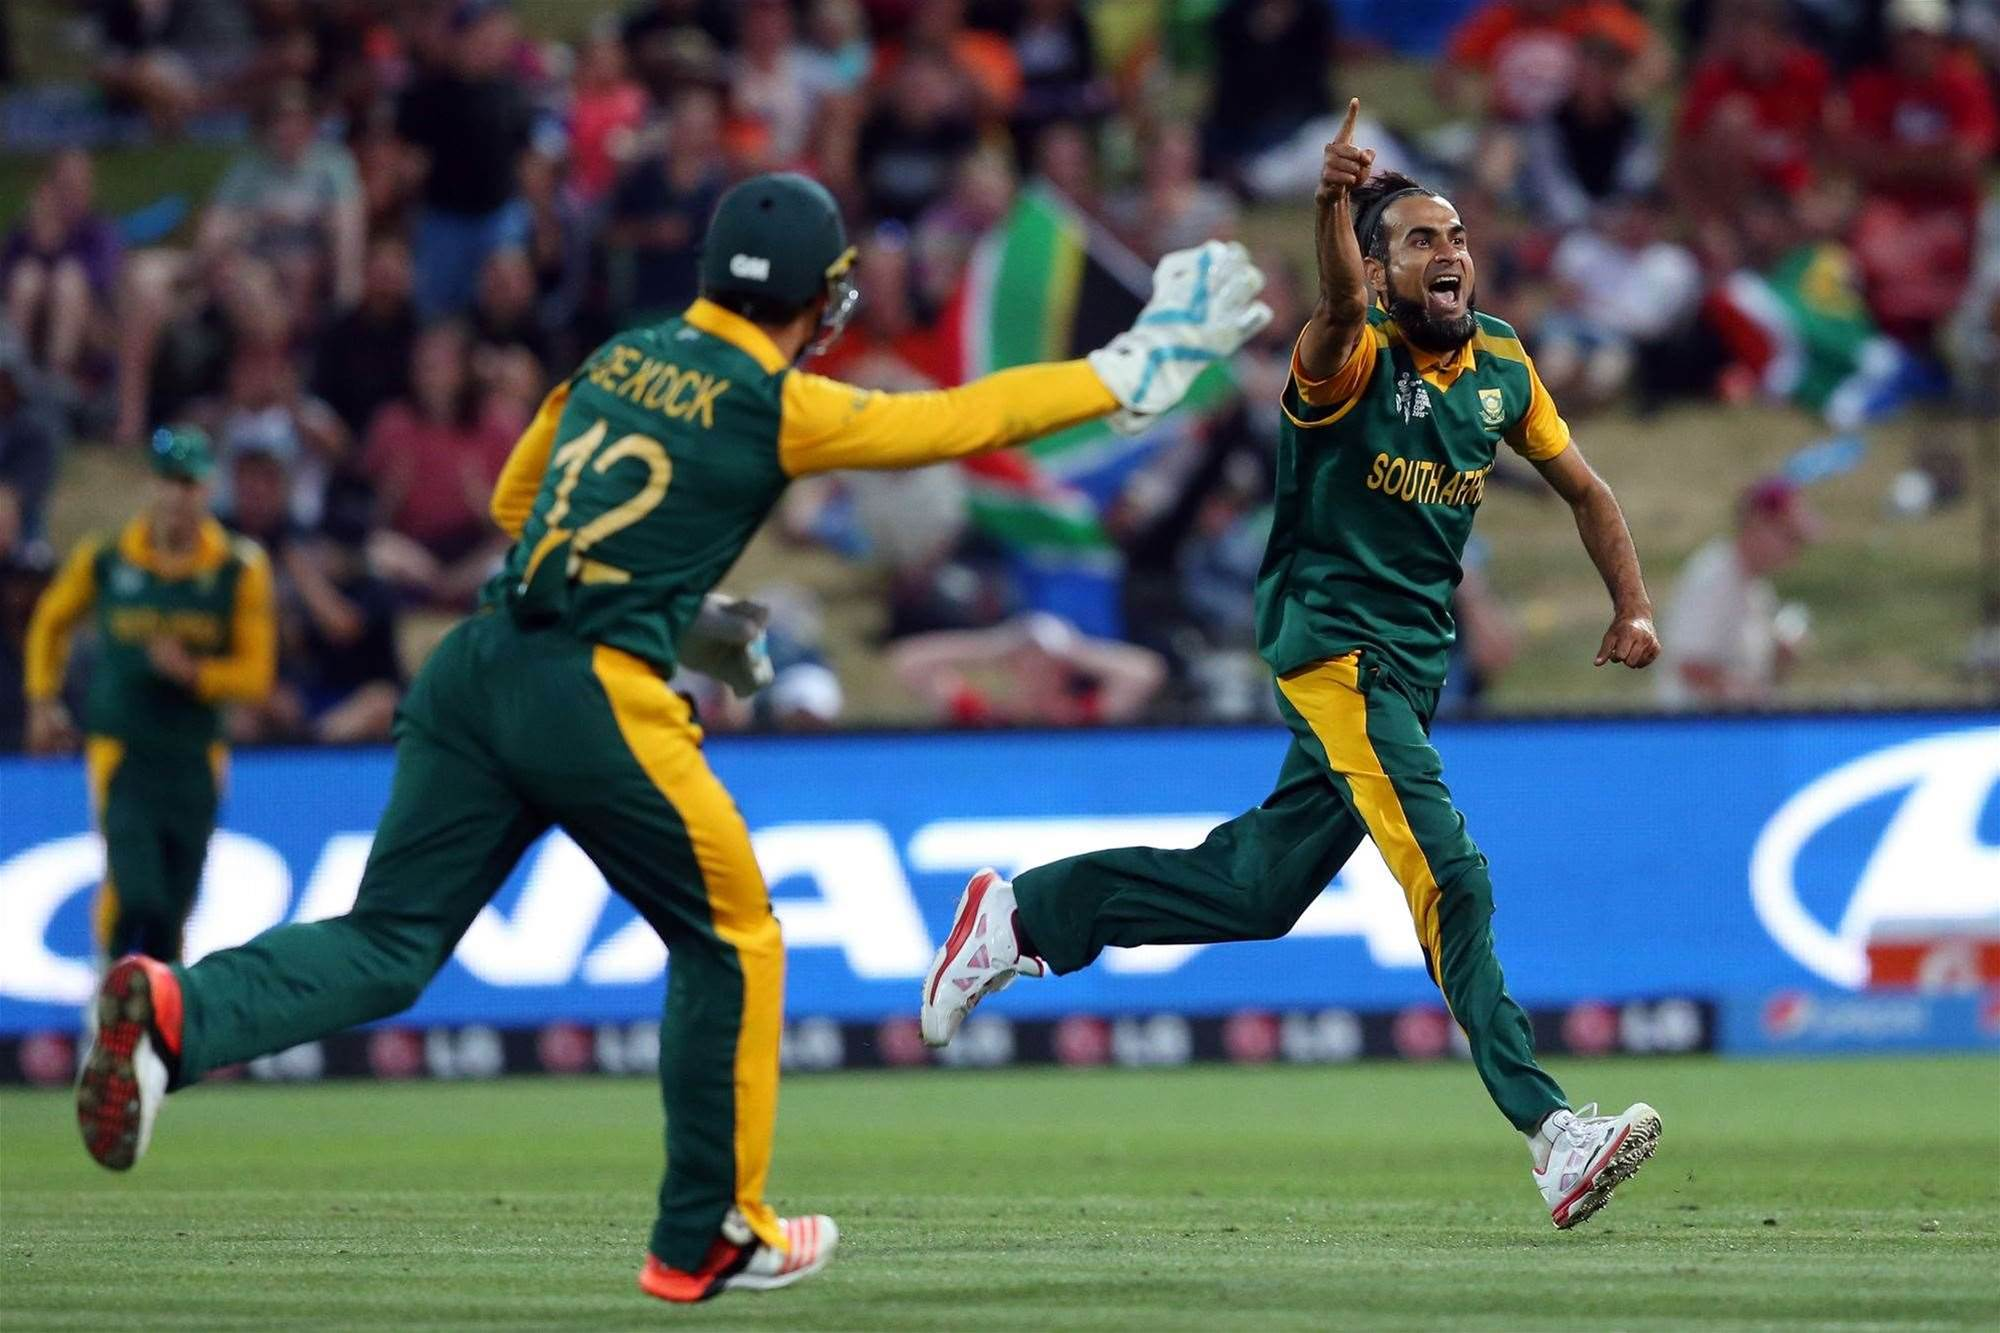 SA V ZIM: Imran Tahir … excitement machine